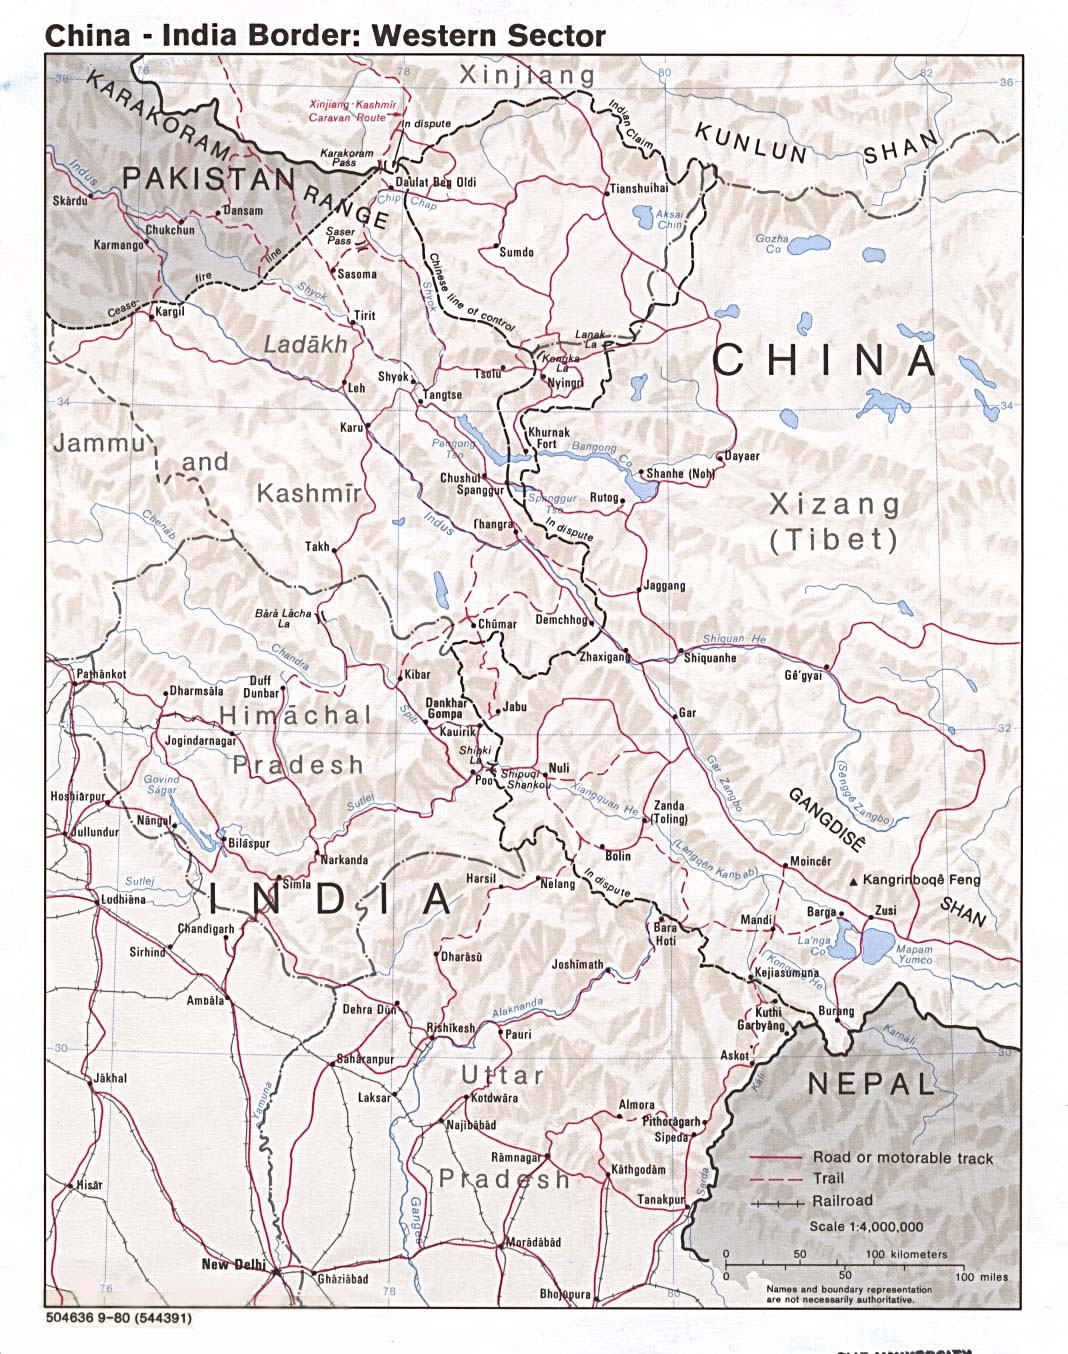 india-china-border-western-sector-1980